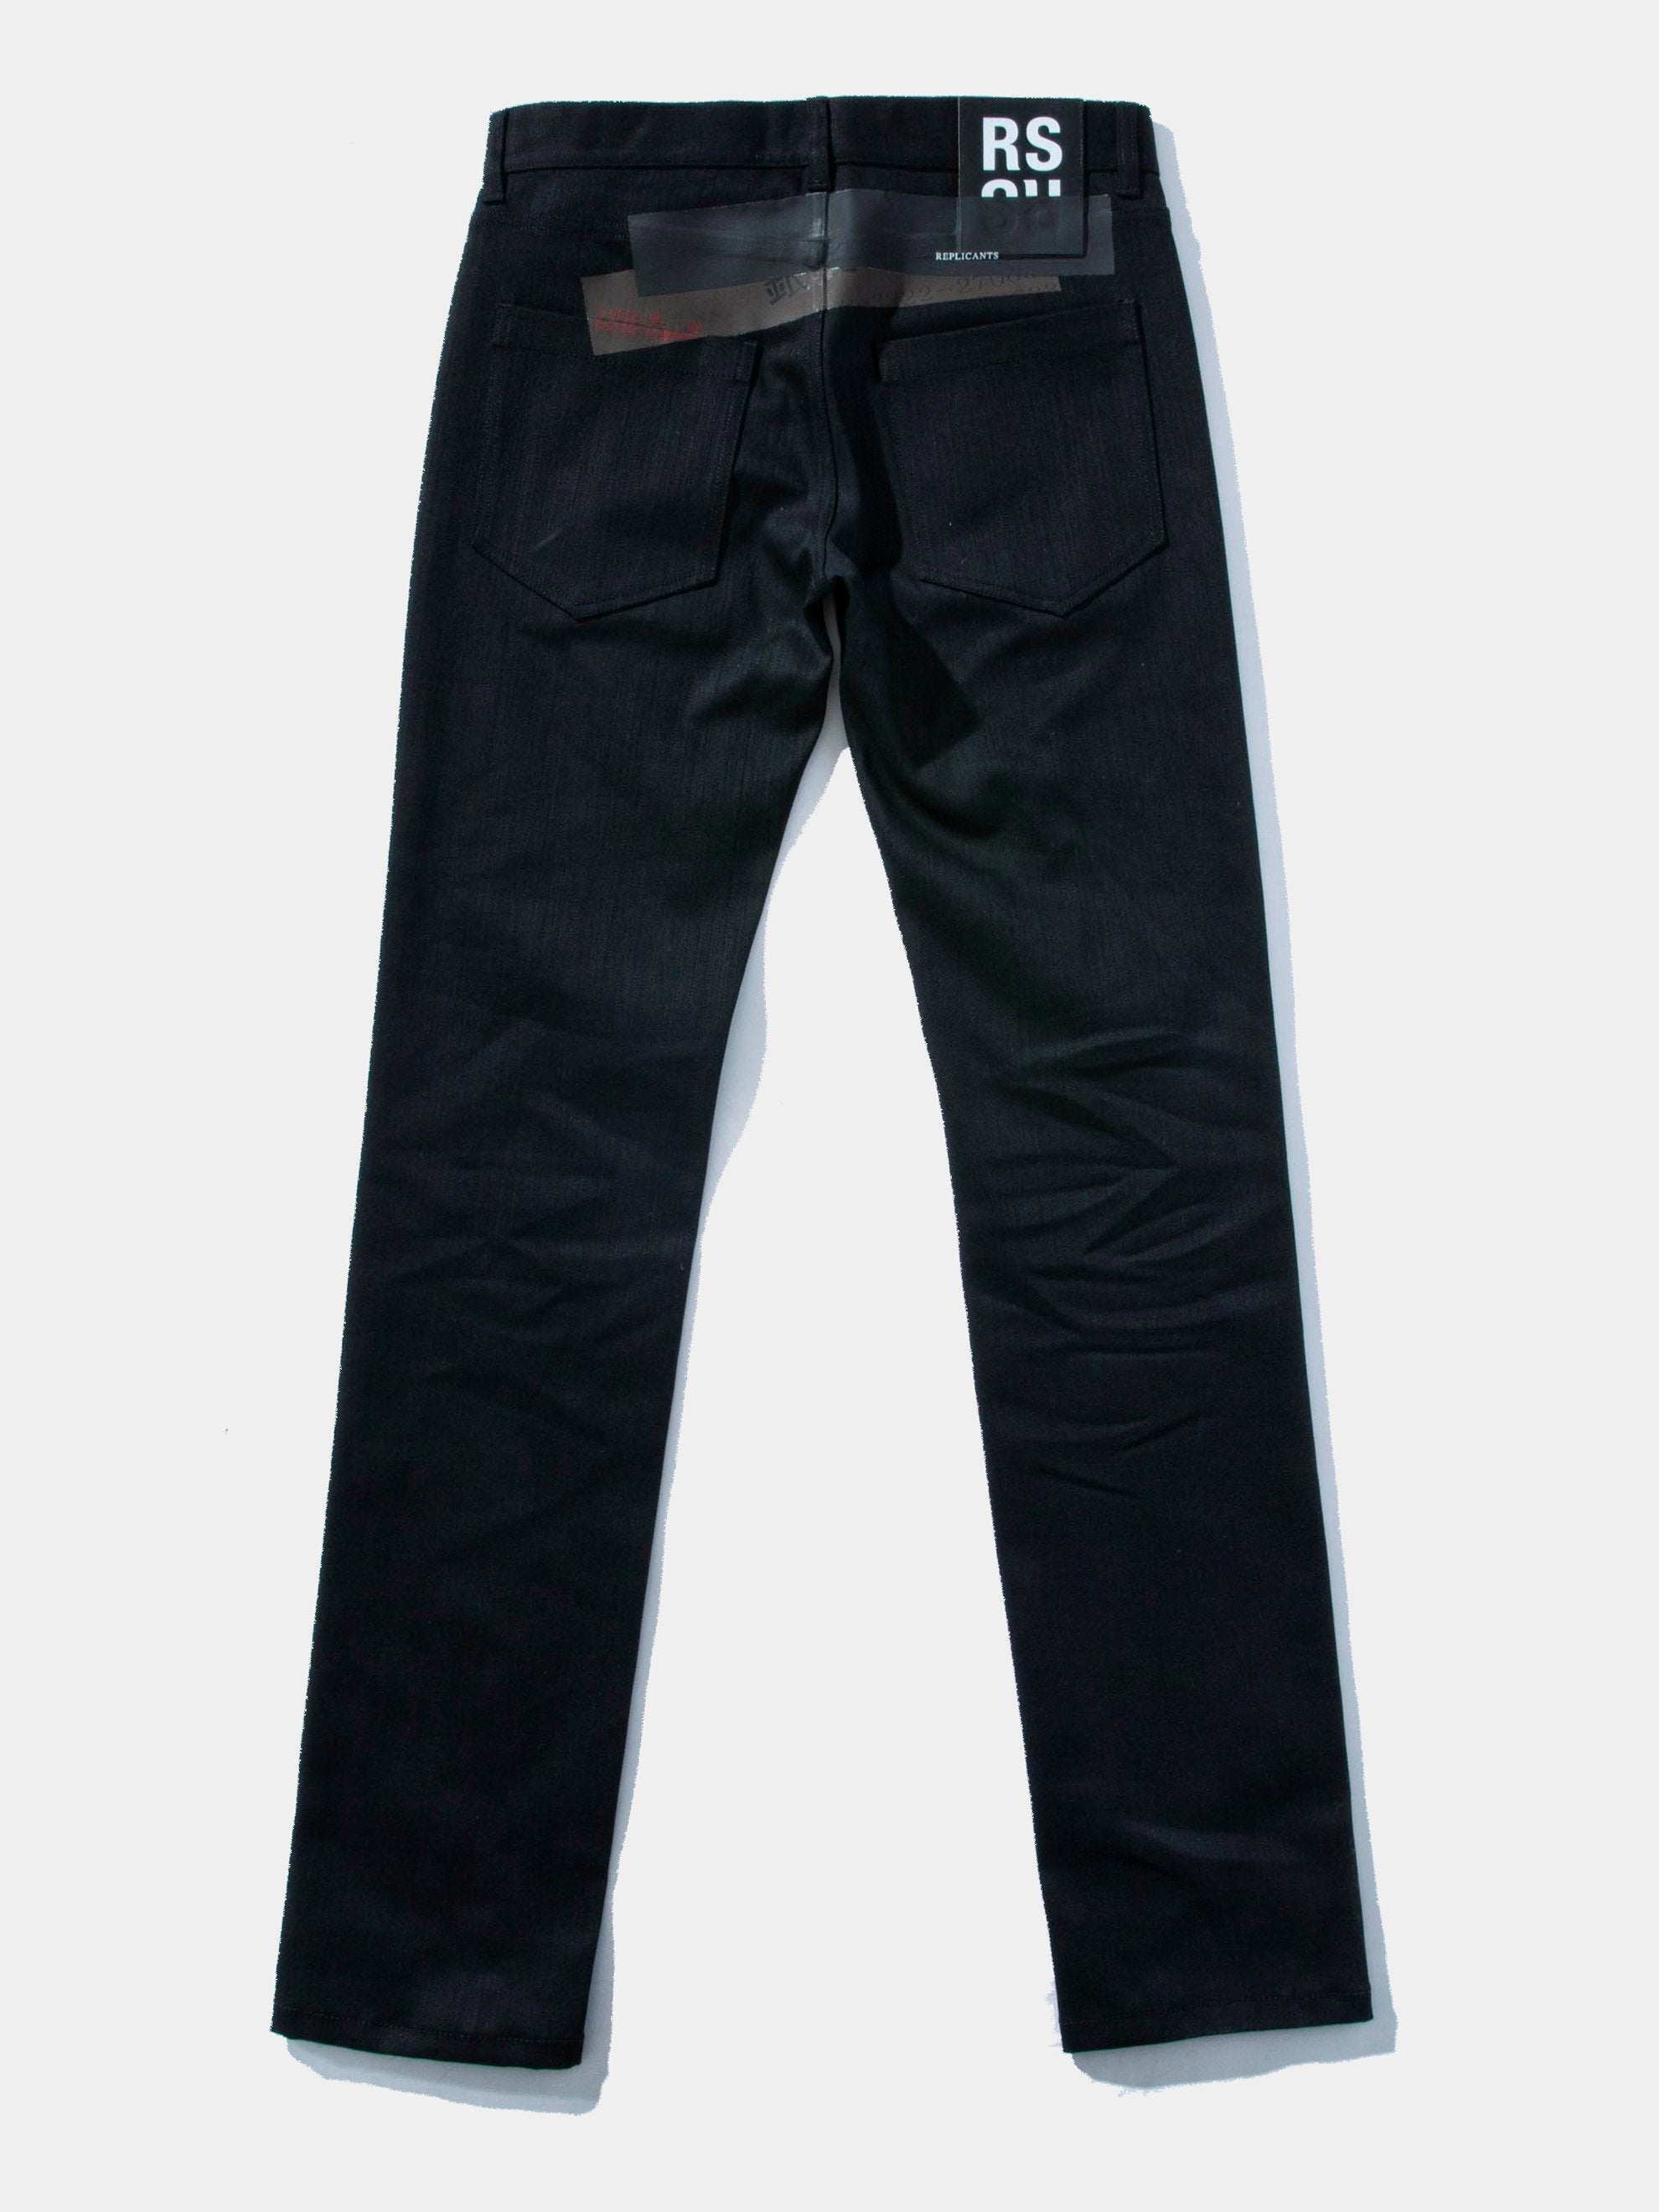 Black Denim Regular Fit Pants 1